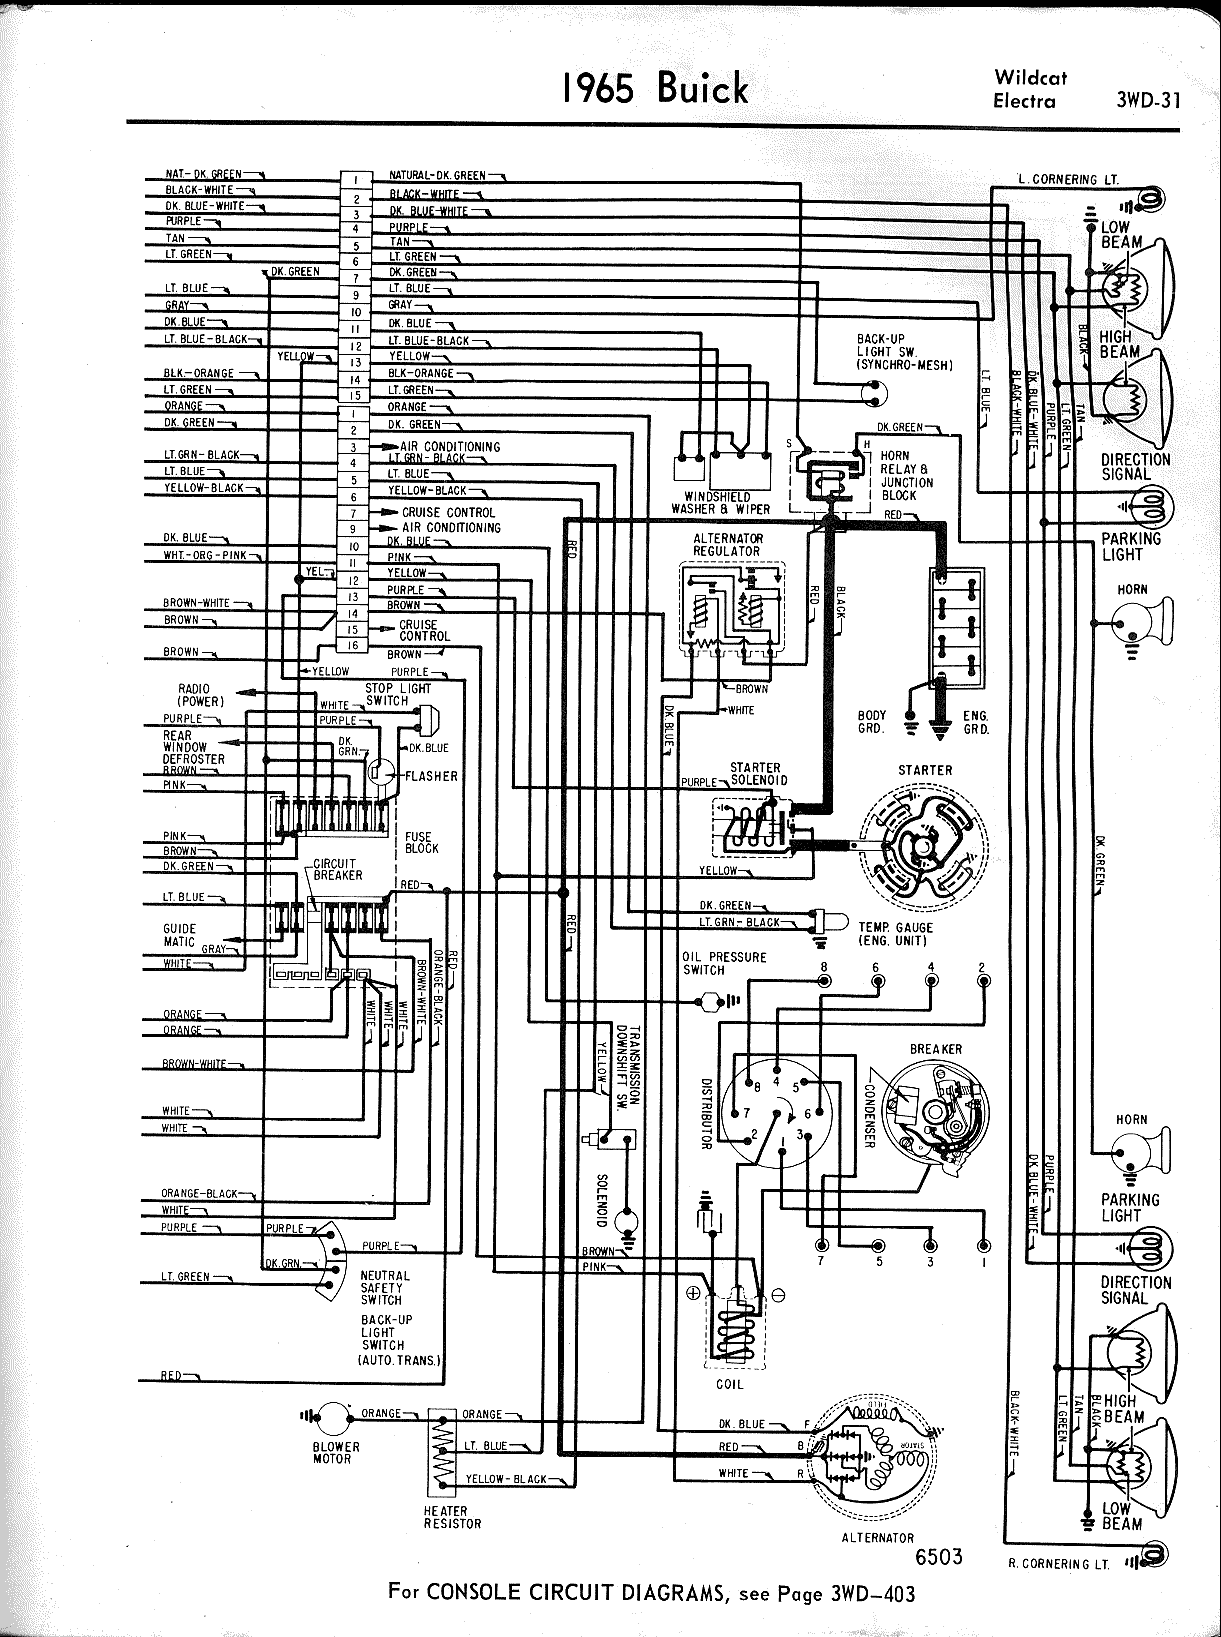 1997 buick lesabre wiring diagram house lights 1989 free engine image